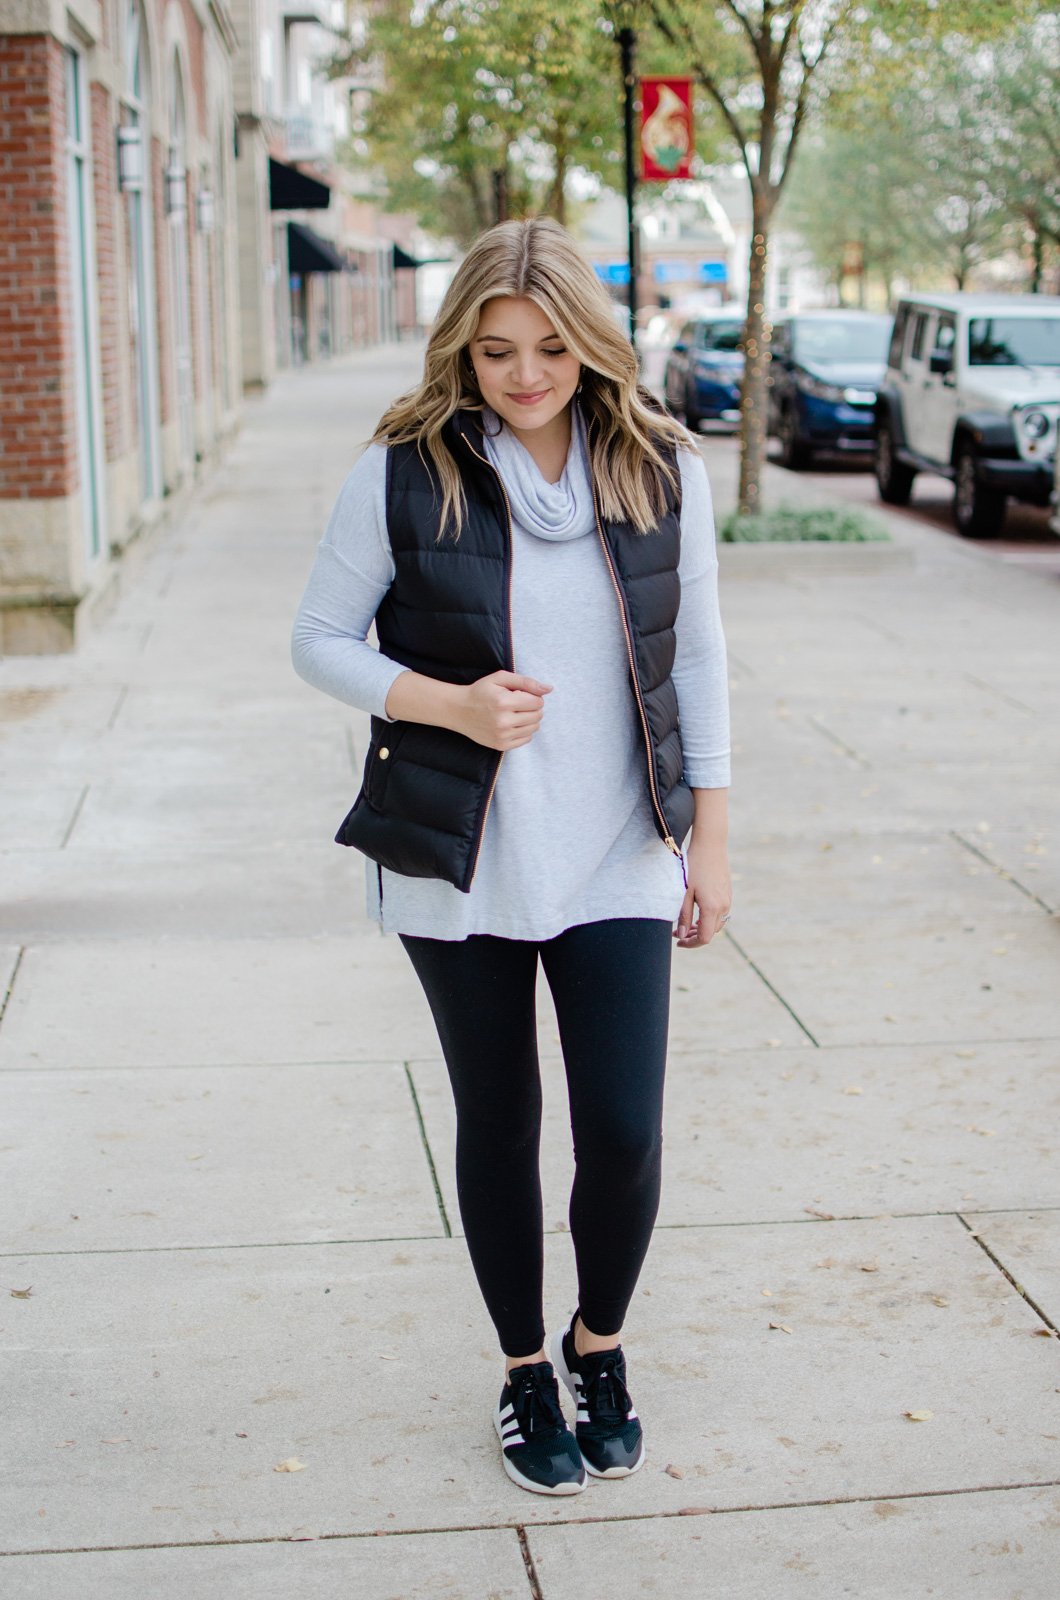 six puffer vest outfits - head to the blog to see all the ideas and get details of this athleisure look! bylaurenm.com